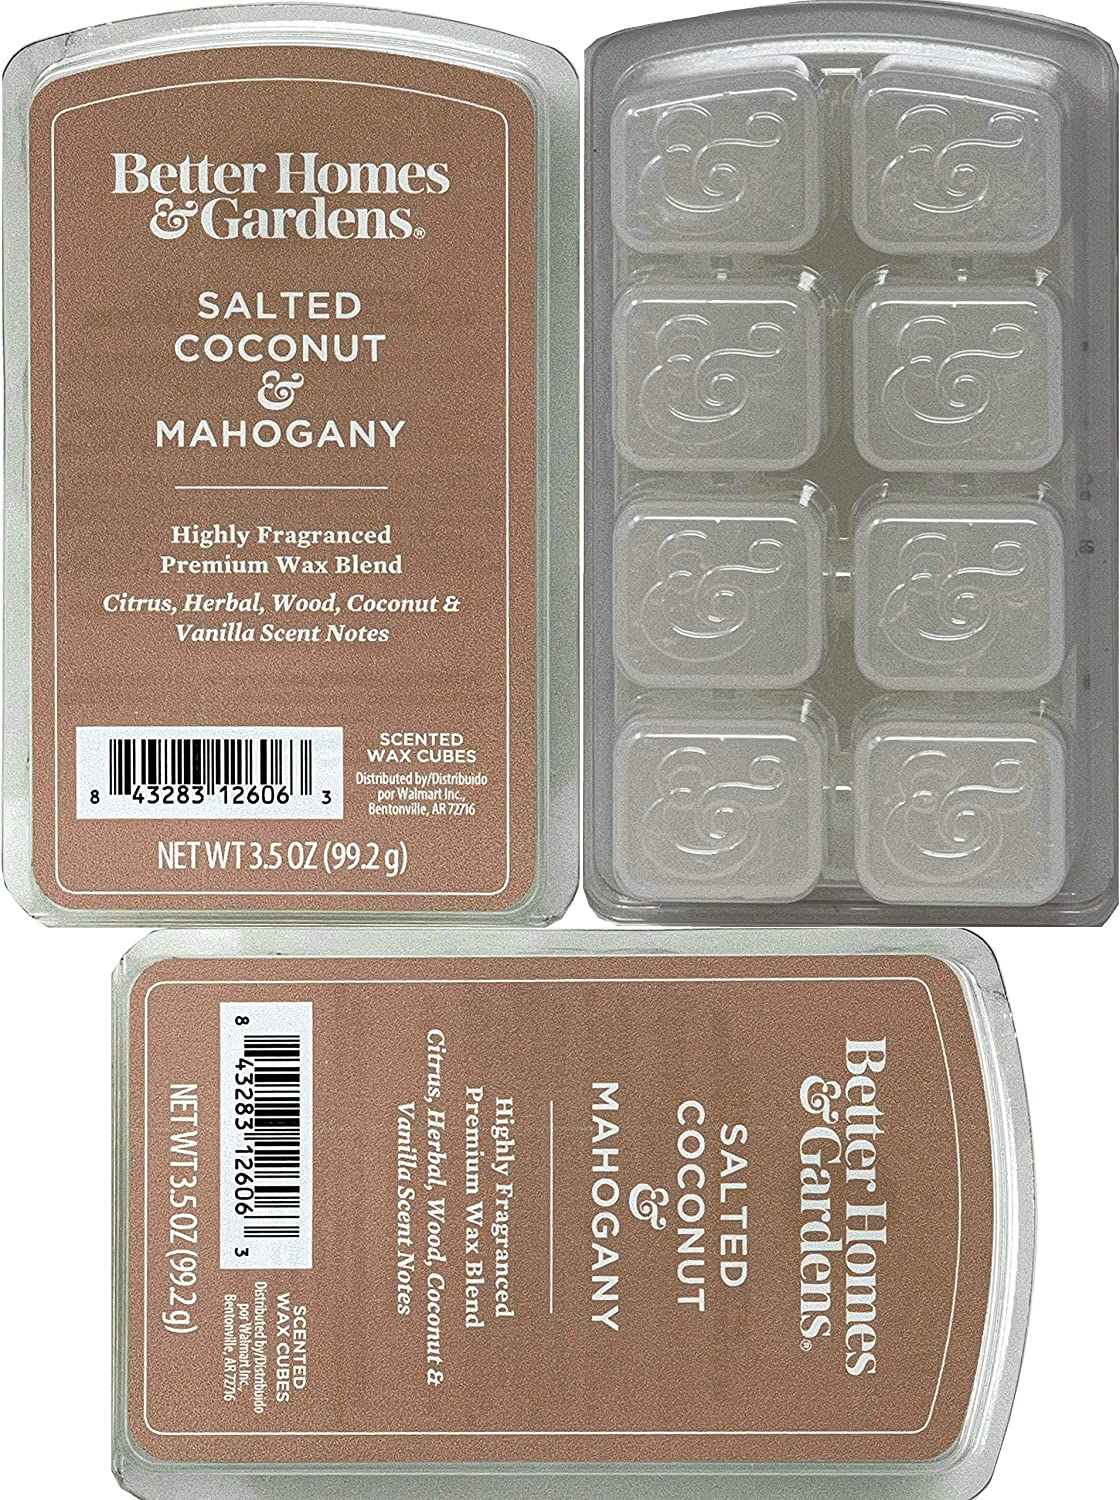 Better Homes and Gardens - Salted Coconut and Mahogany 3.5oz Scented Wax Cubes 3-Pack